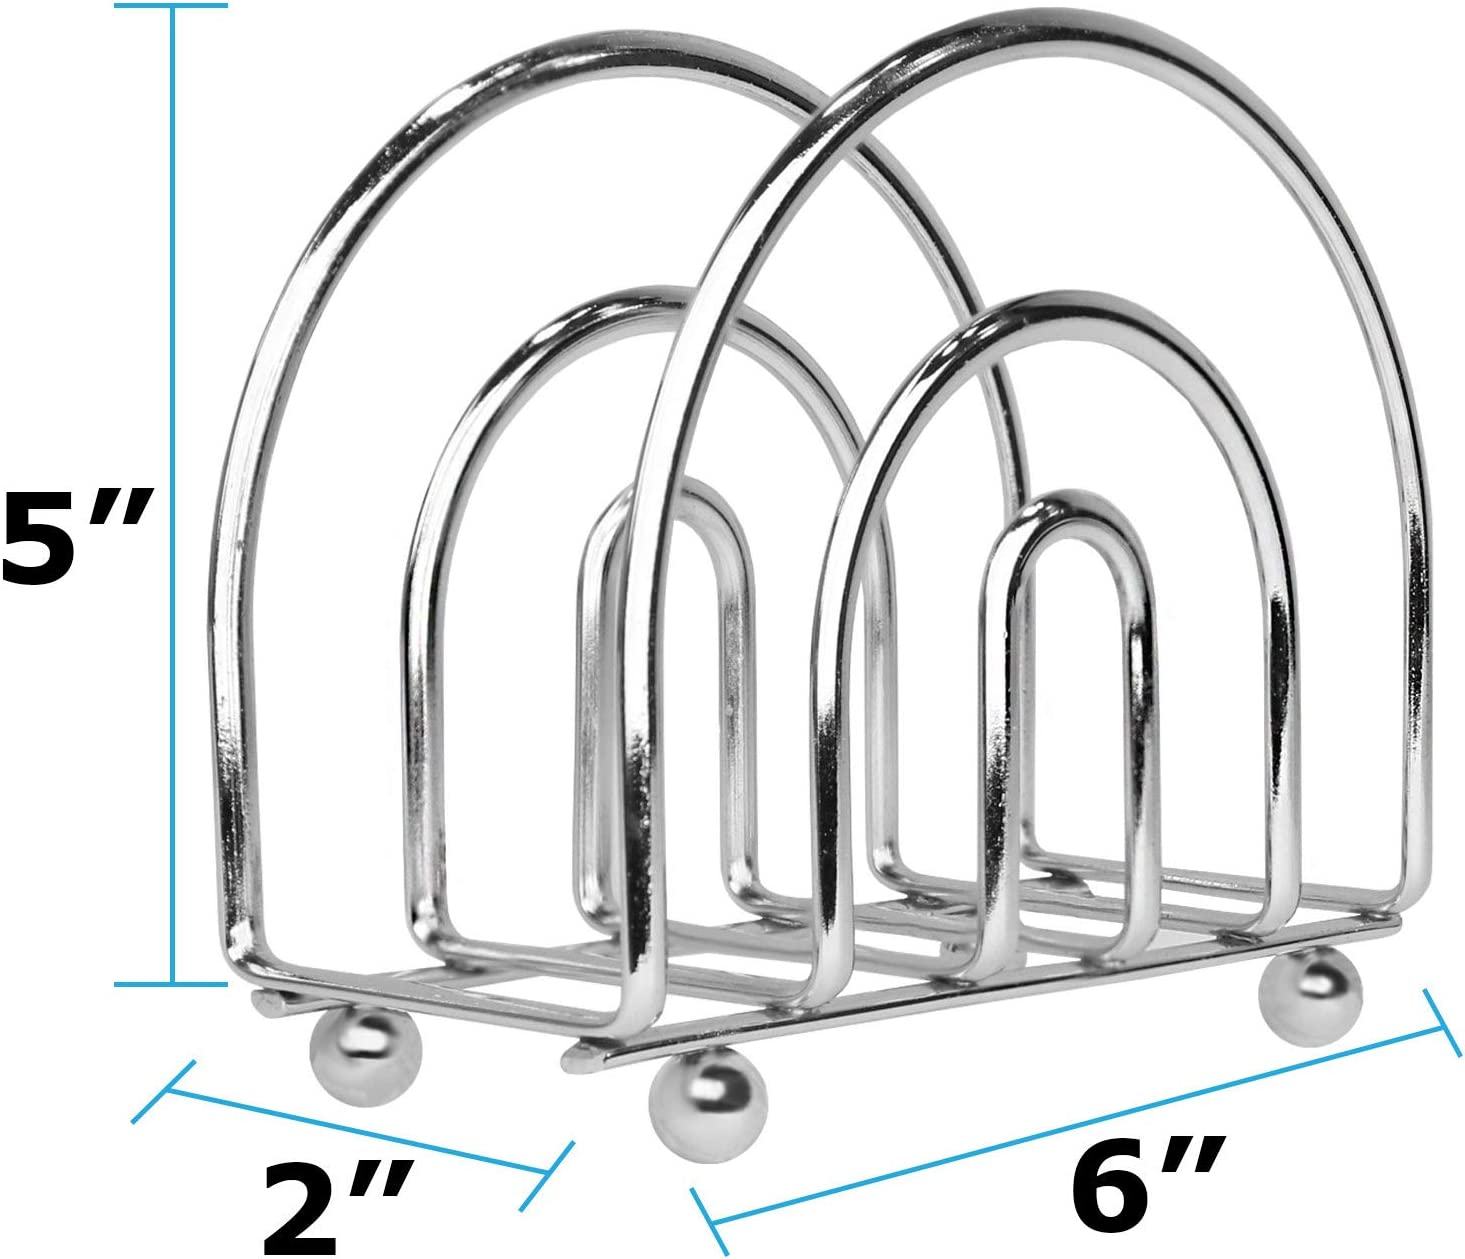 Kitchen Organization Chrome Classic Napkin Holders for Tables Blue Donuts Chrome Collection Napkin Holder Dining Table Napkin Holders for Kitchen